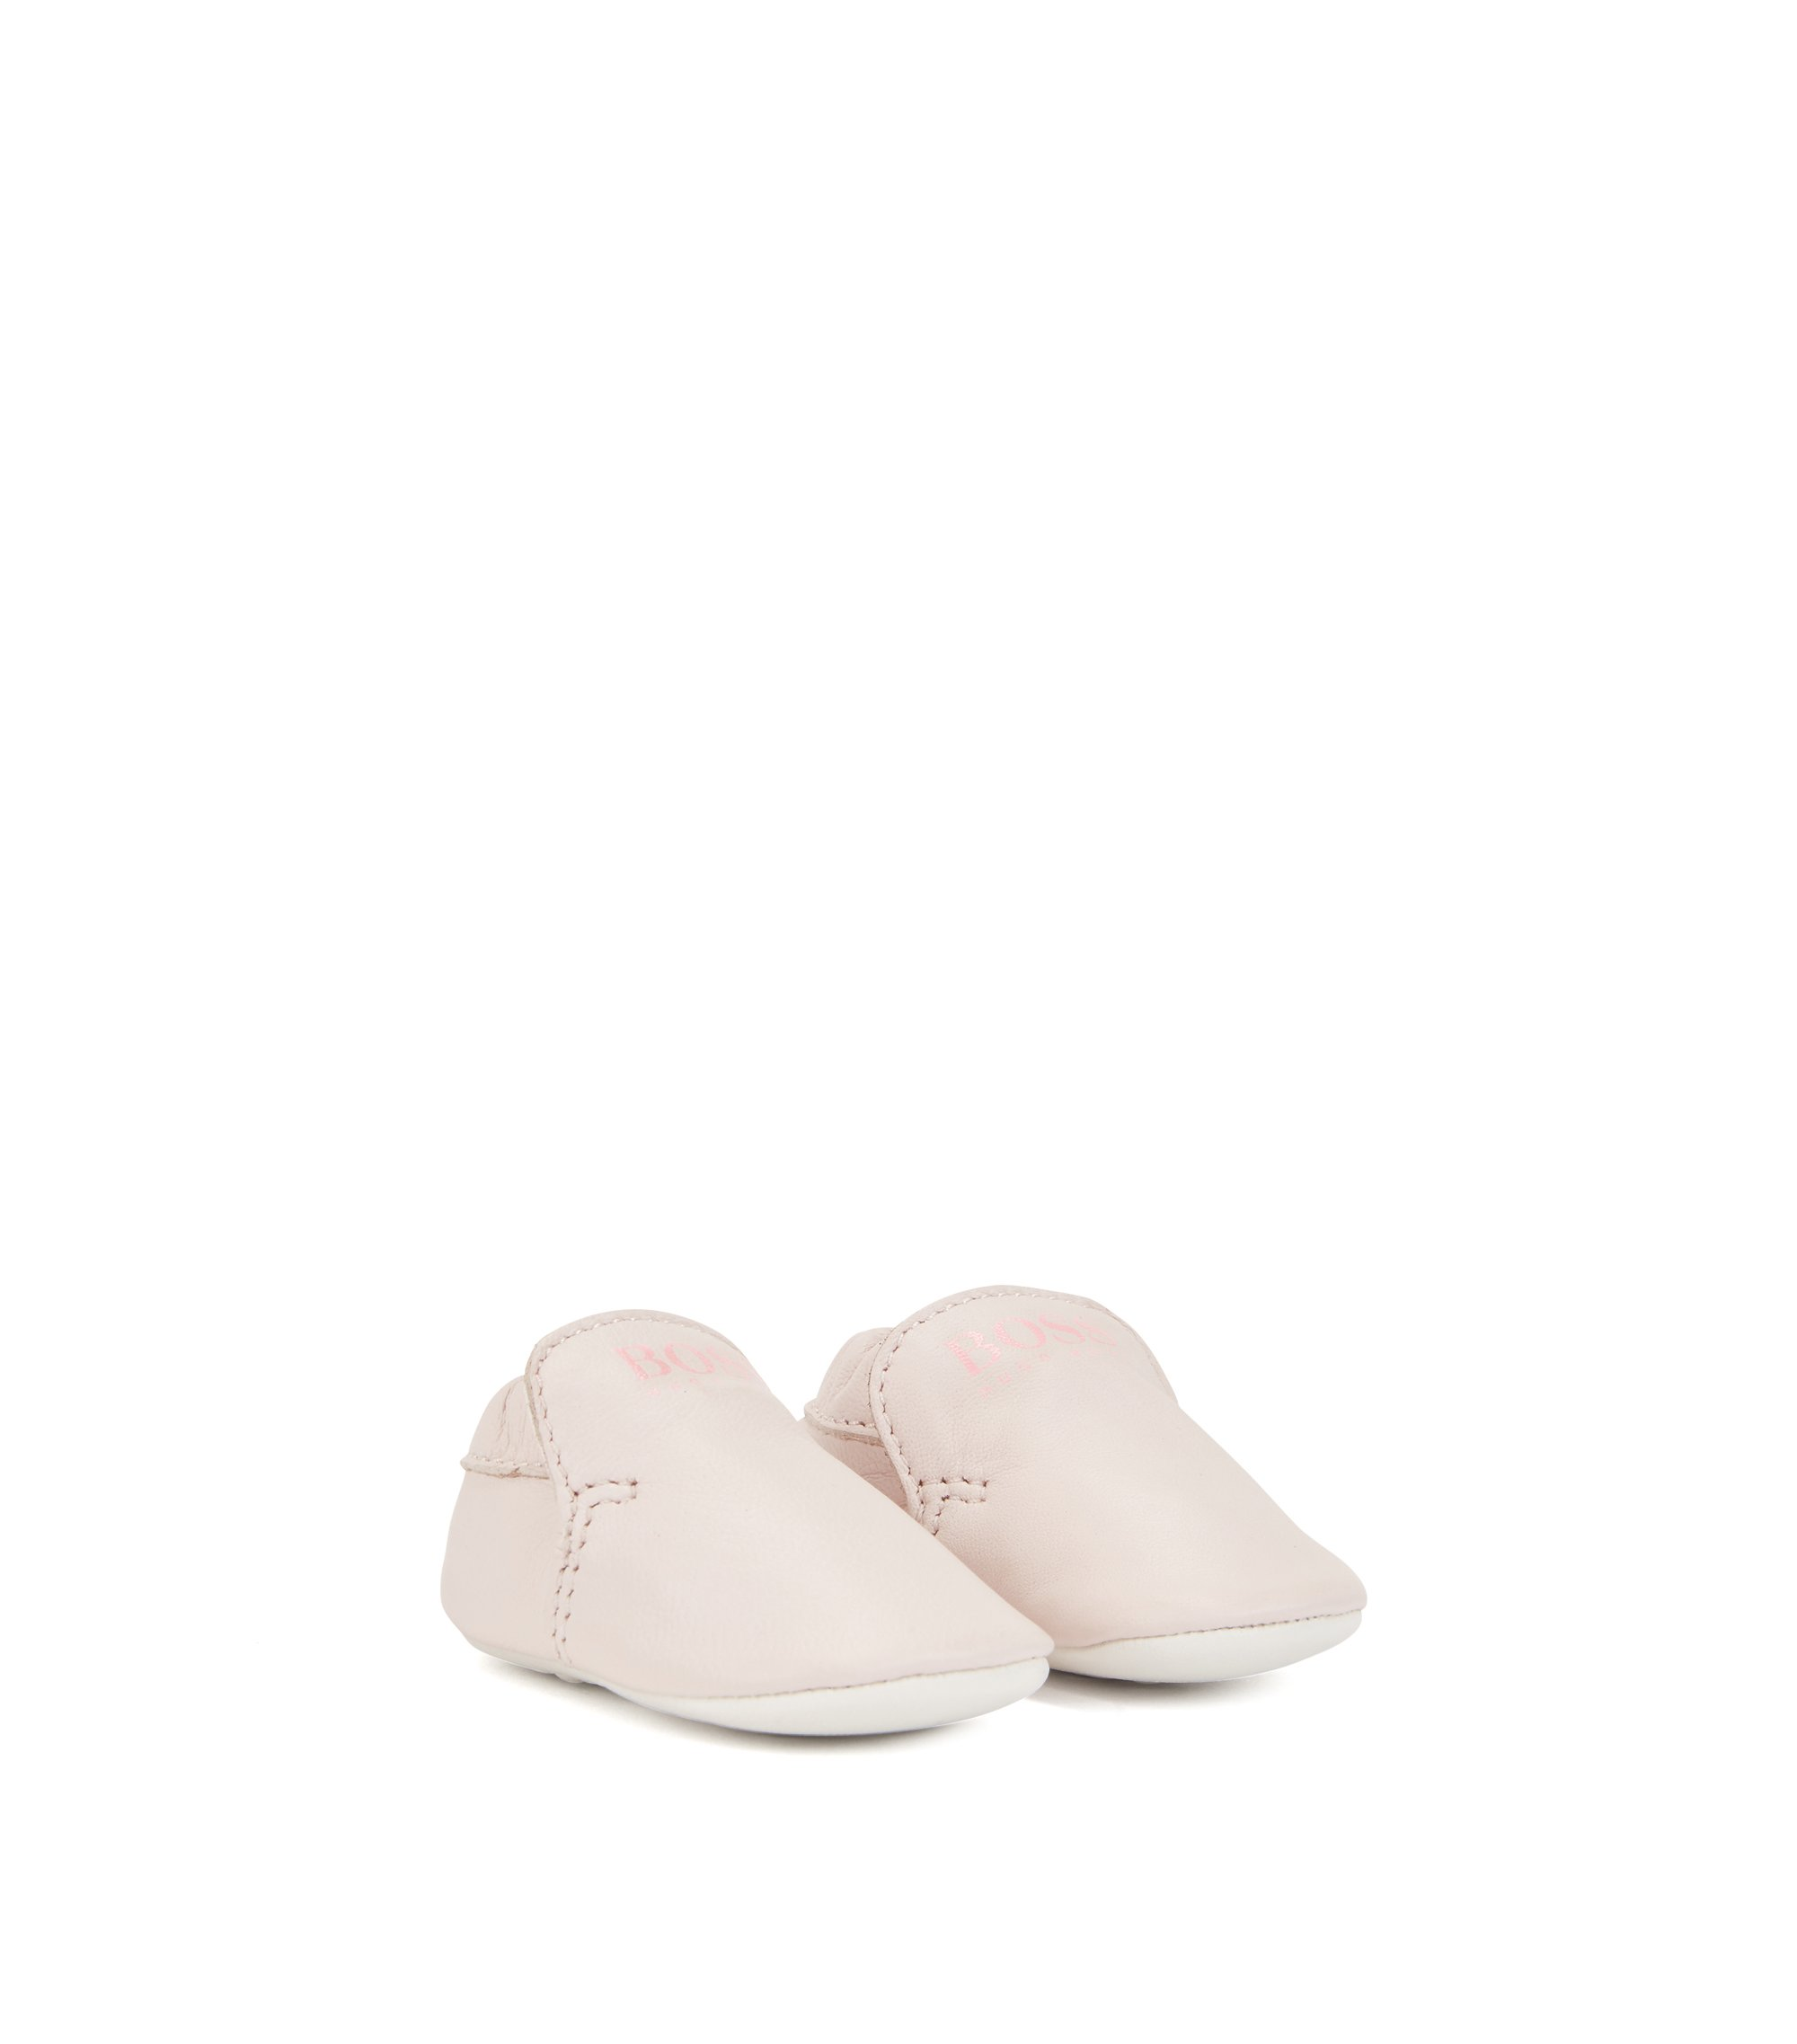 Baby girl booties in soft leather, light pink